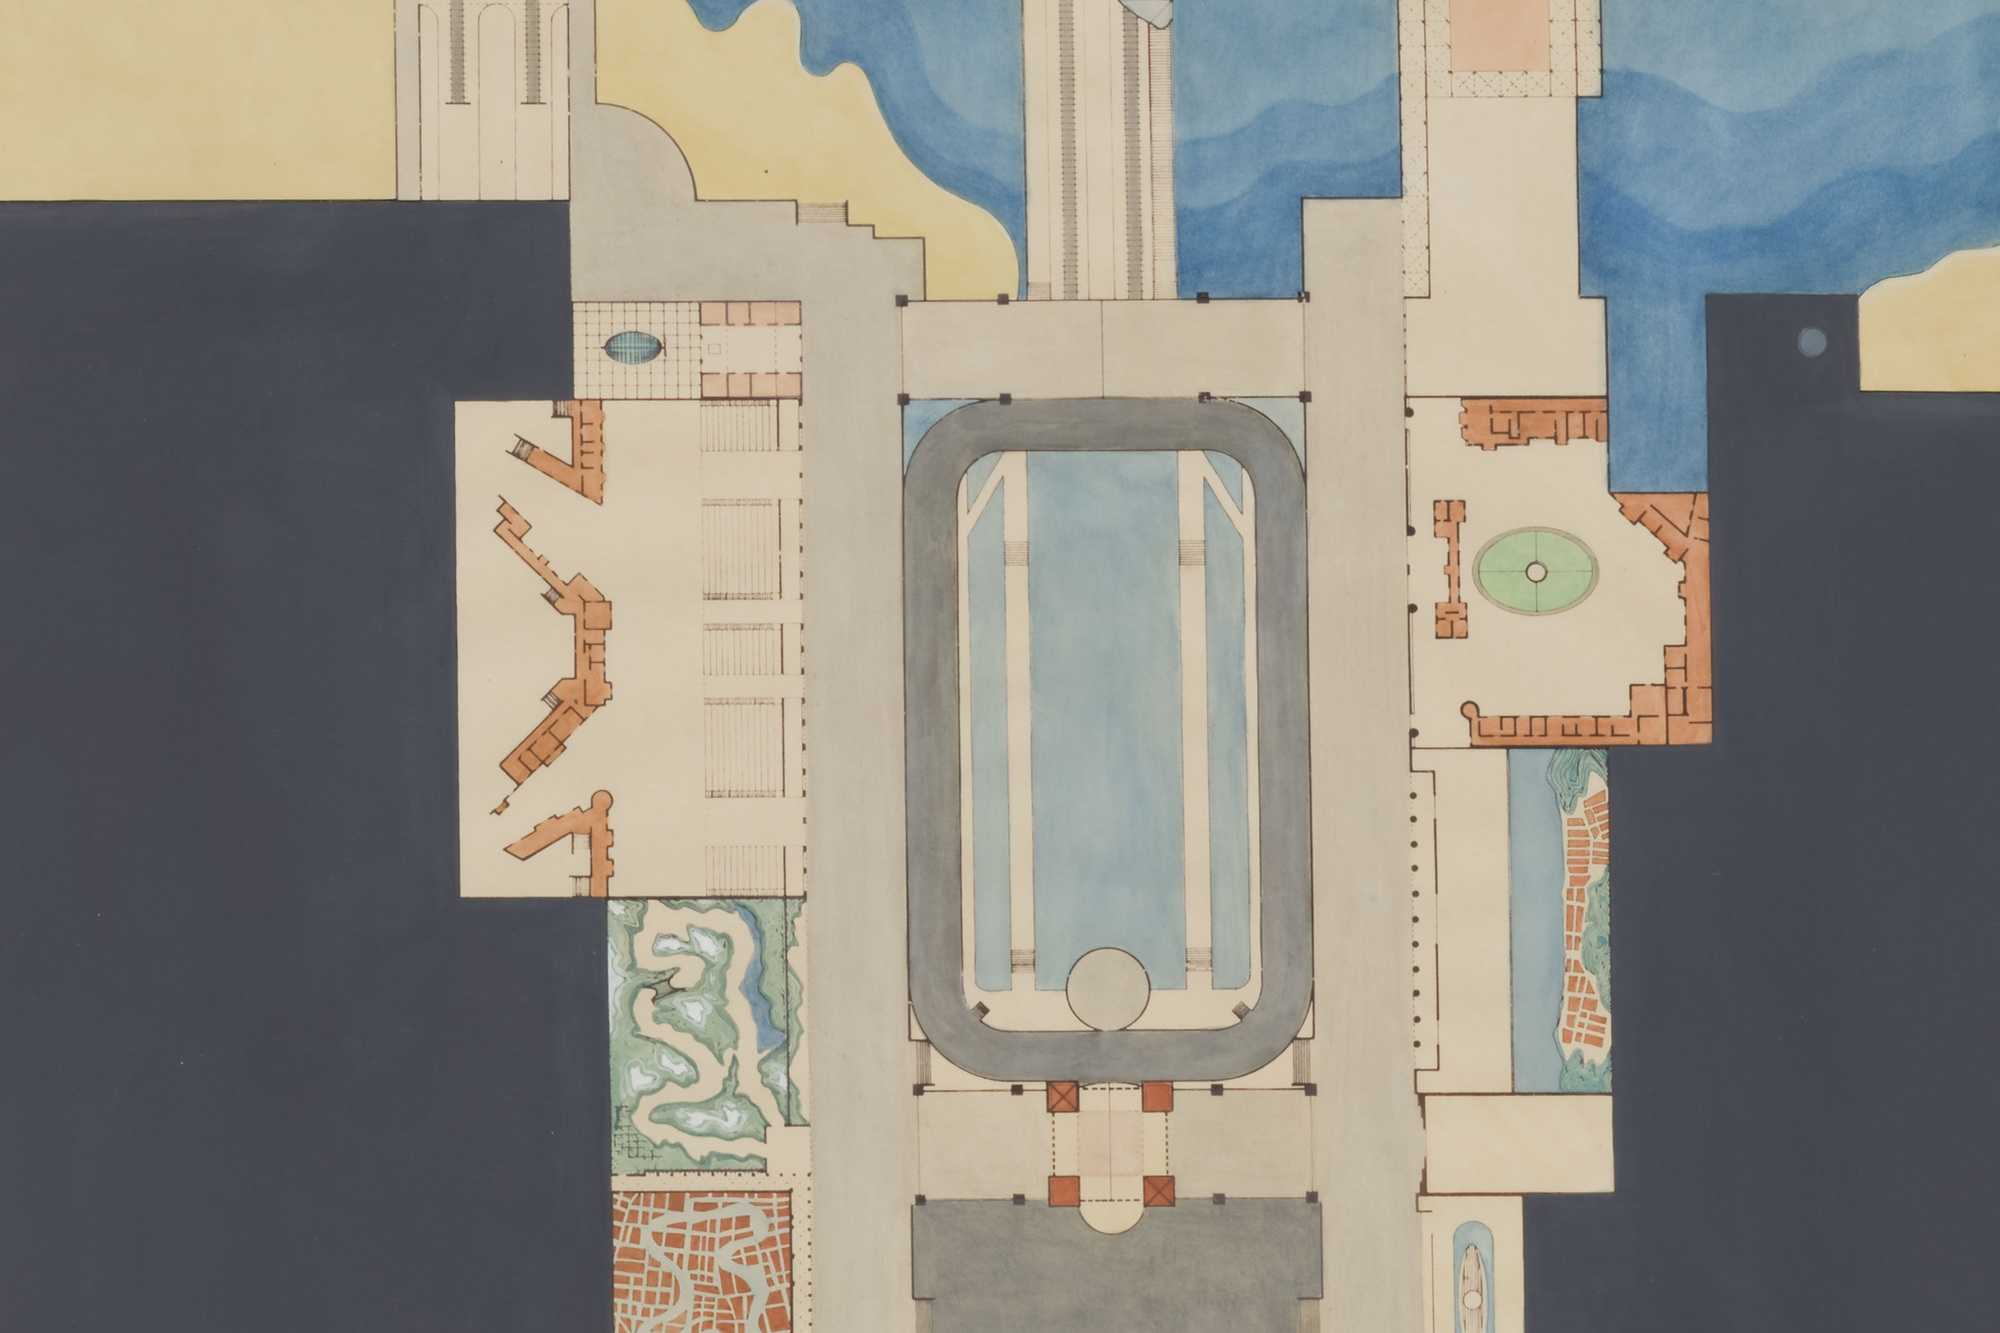 Rem Koolhaas. Plan of Dreamland. 1977. Watercolor and ink, 41 3/4 × 22″ (106 × 55.9 cm). Gift of Frederieke S. Taylor. © 2008 Rem Koolhaas